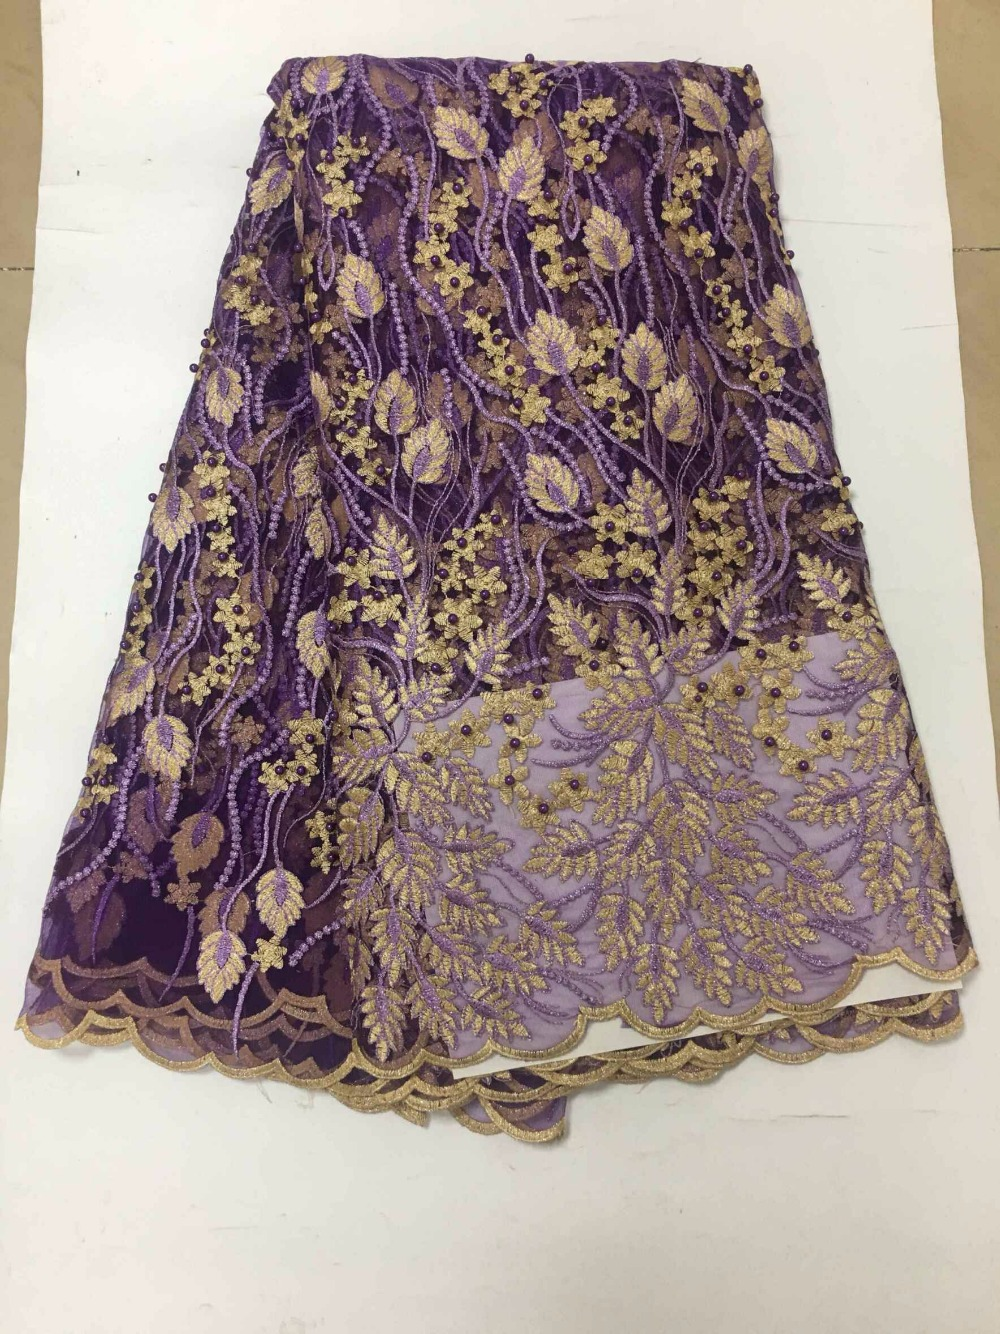 africa Lace Fabrics For Wedding 2018 French mesh Lace Fabric High Quality Lace high quality free